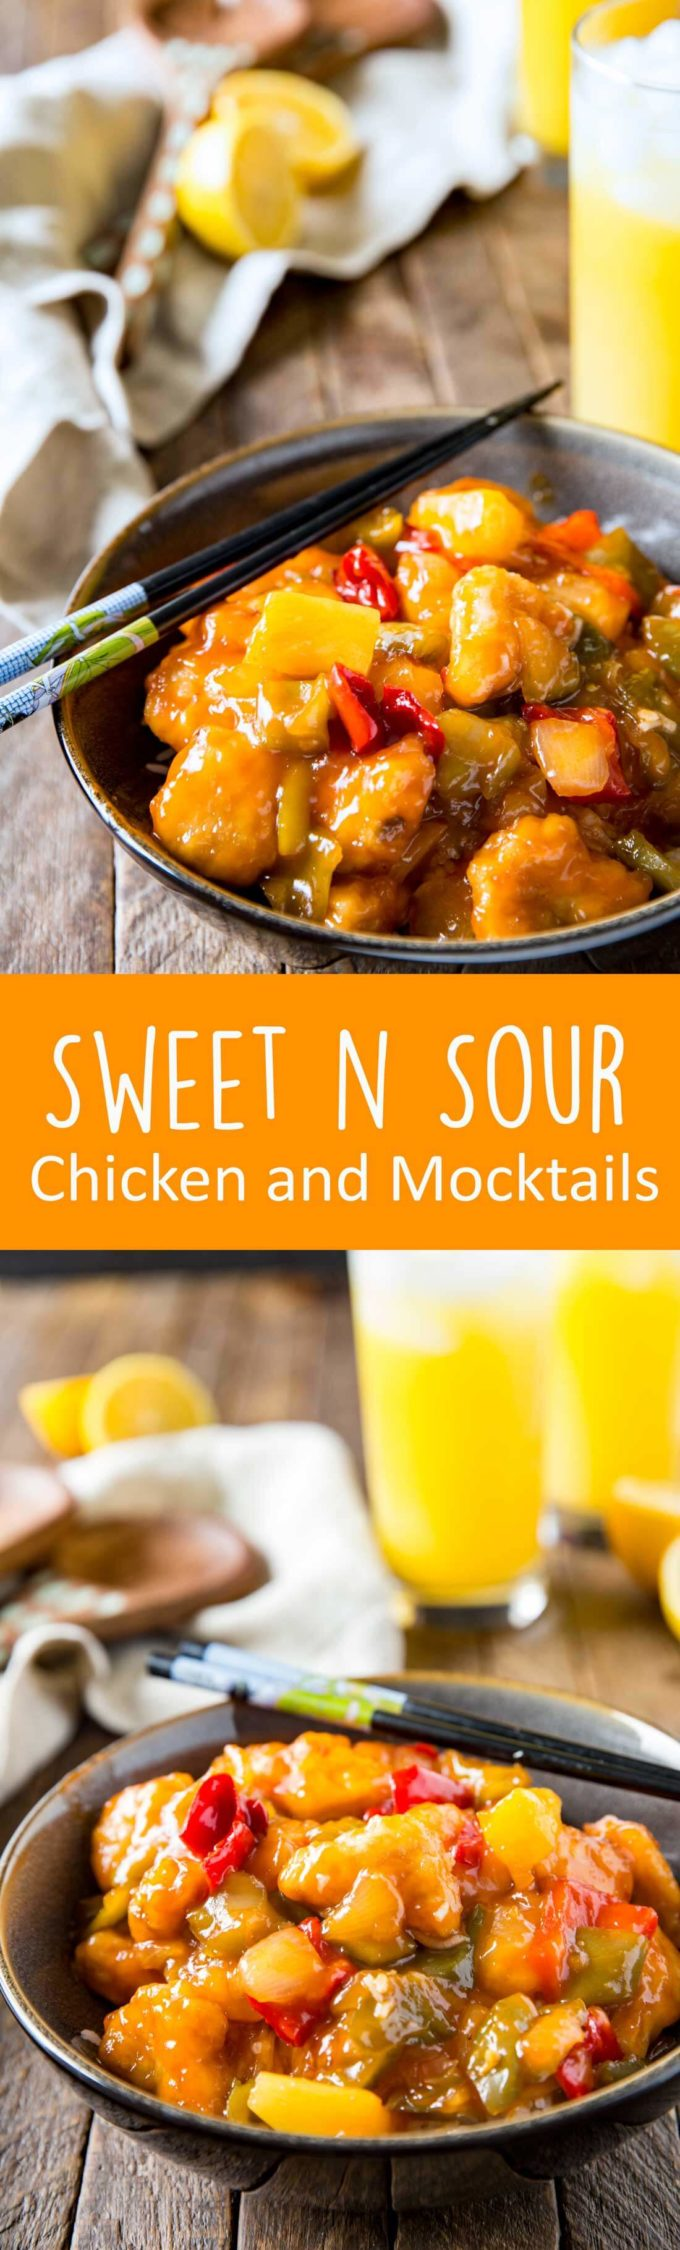 Sweet and Sour Mocktail and Chicken dinner